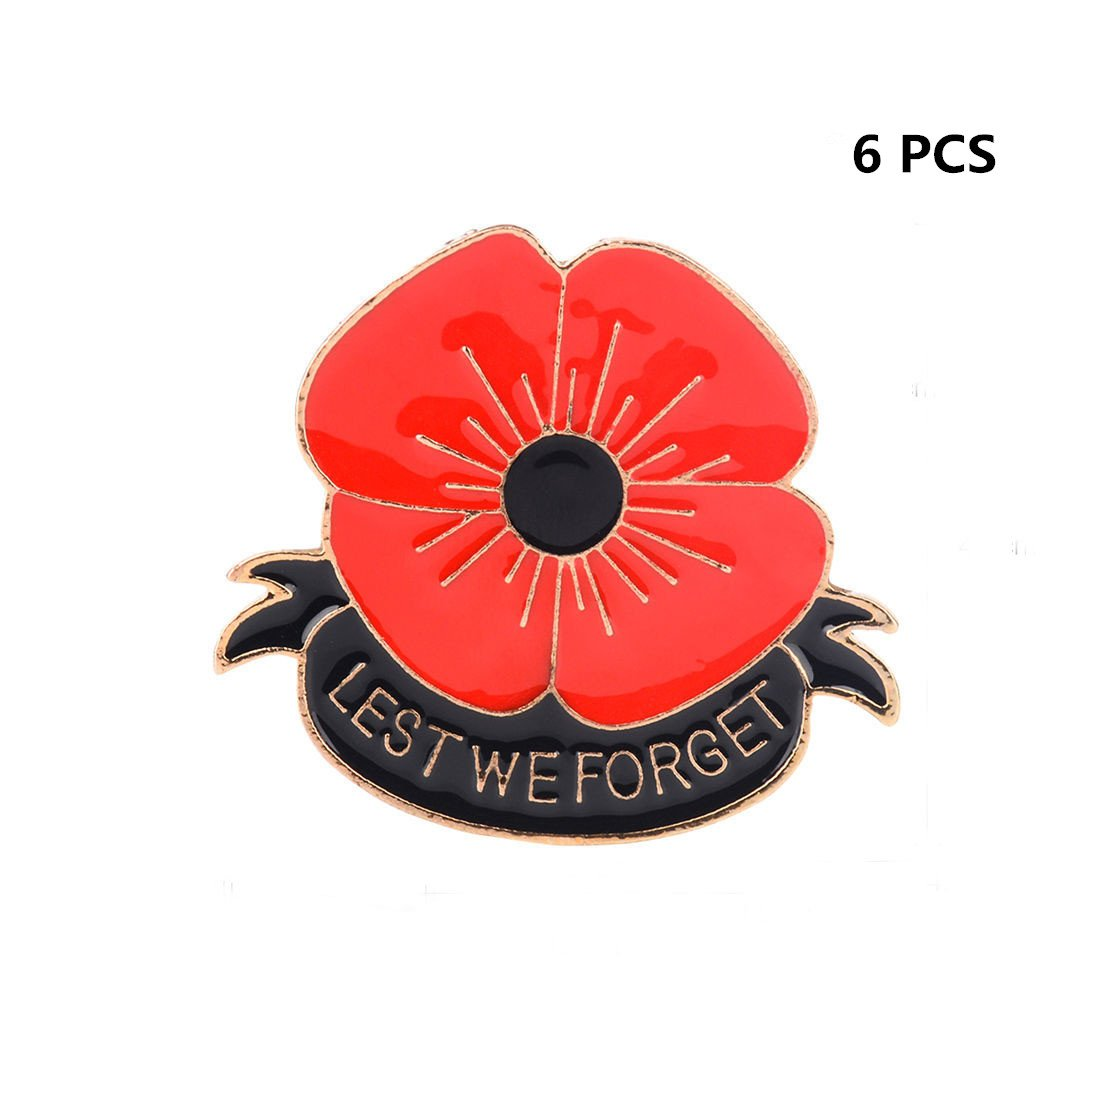 6 Pack Classic Red Poppy Flowers Brooch Pin Badge Glitter Soldier Enamel Lapel Plating Pin Gift for Remembrance Day HS Onsing